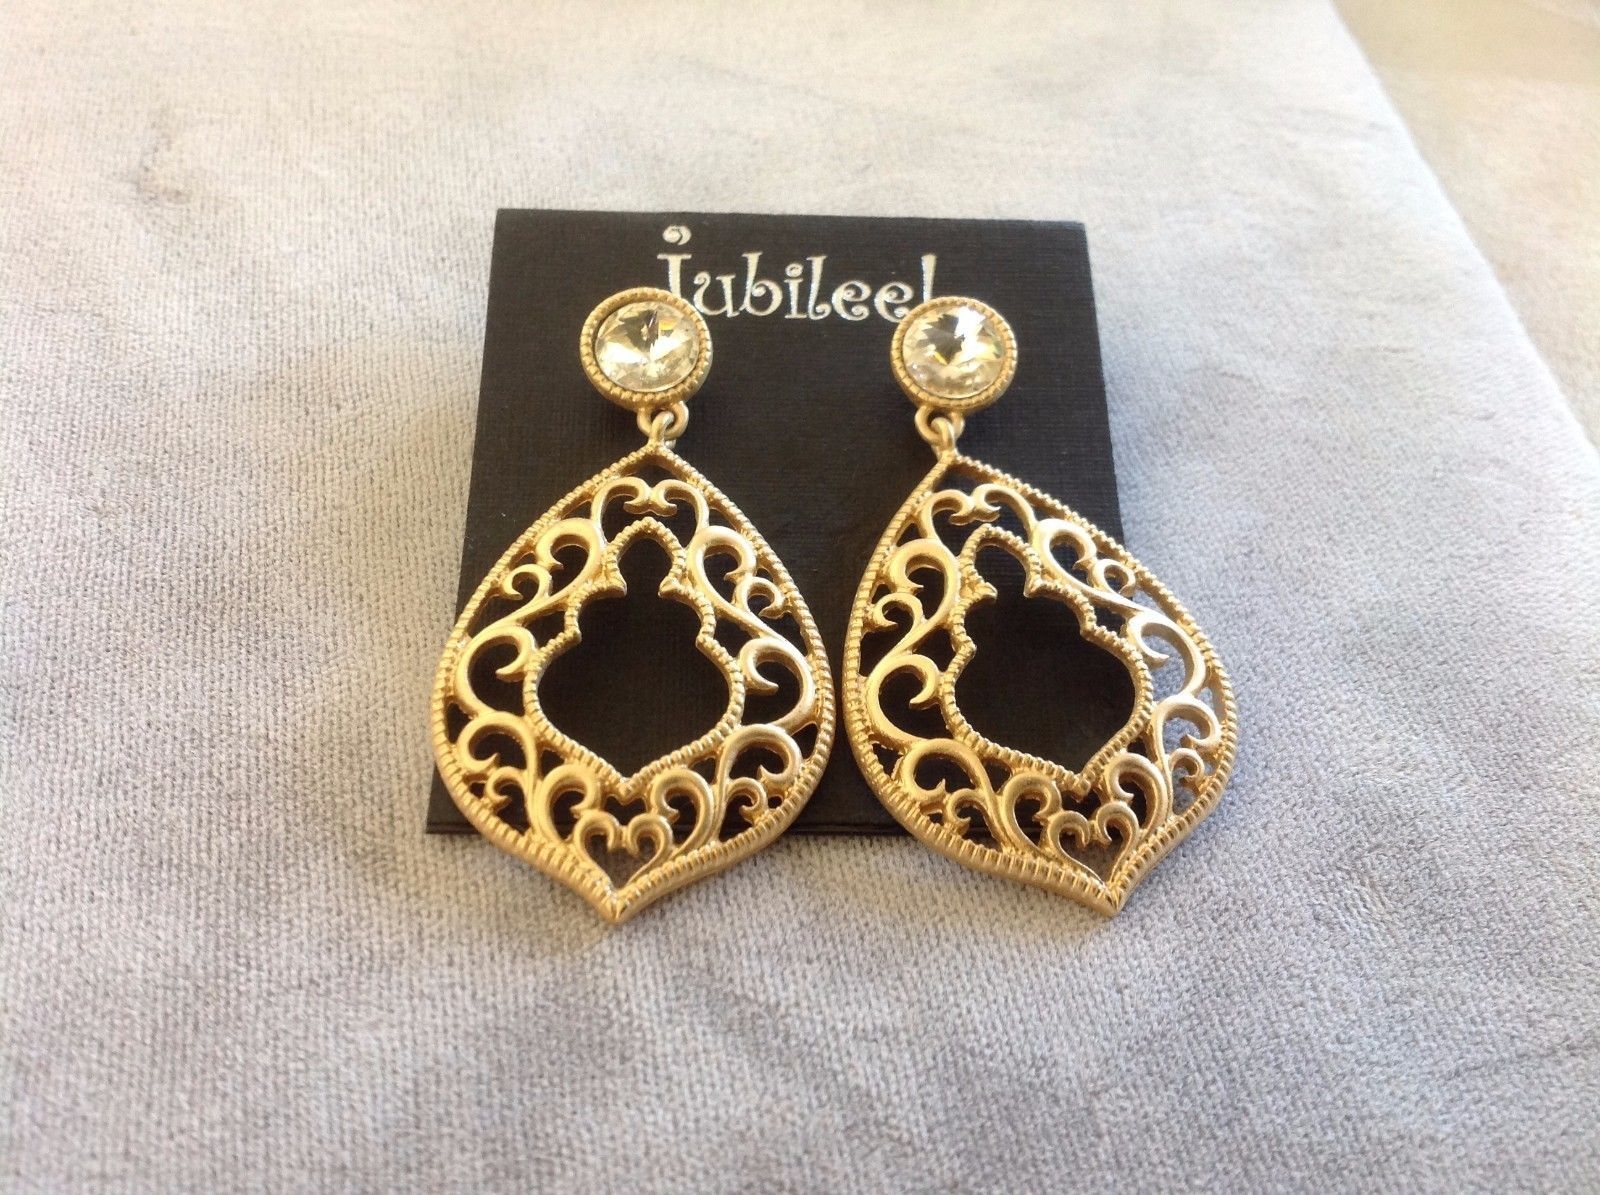 Set Collection of Jubilee! Earrings and Bracelet Gold Toned Simulated Pearls Gem